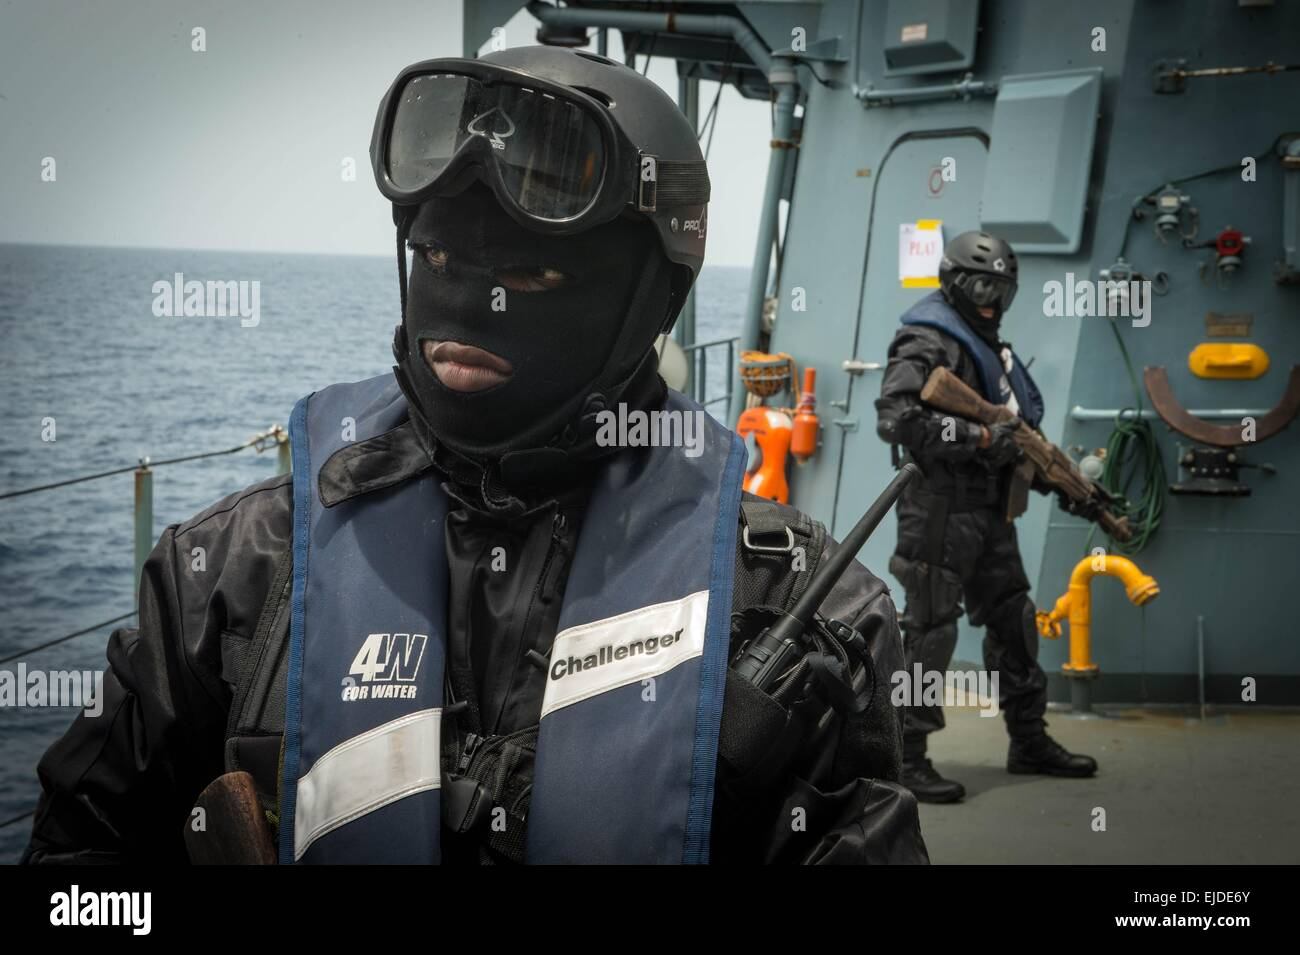 Fgs Security ghanaian special operations commandos establish perimeter